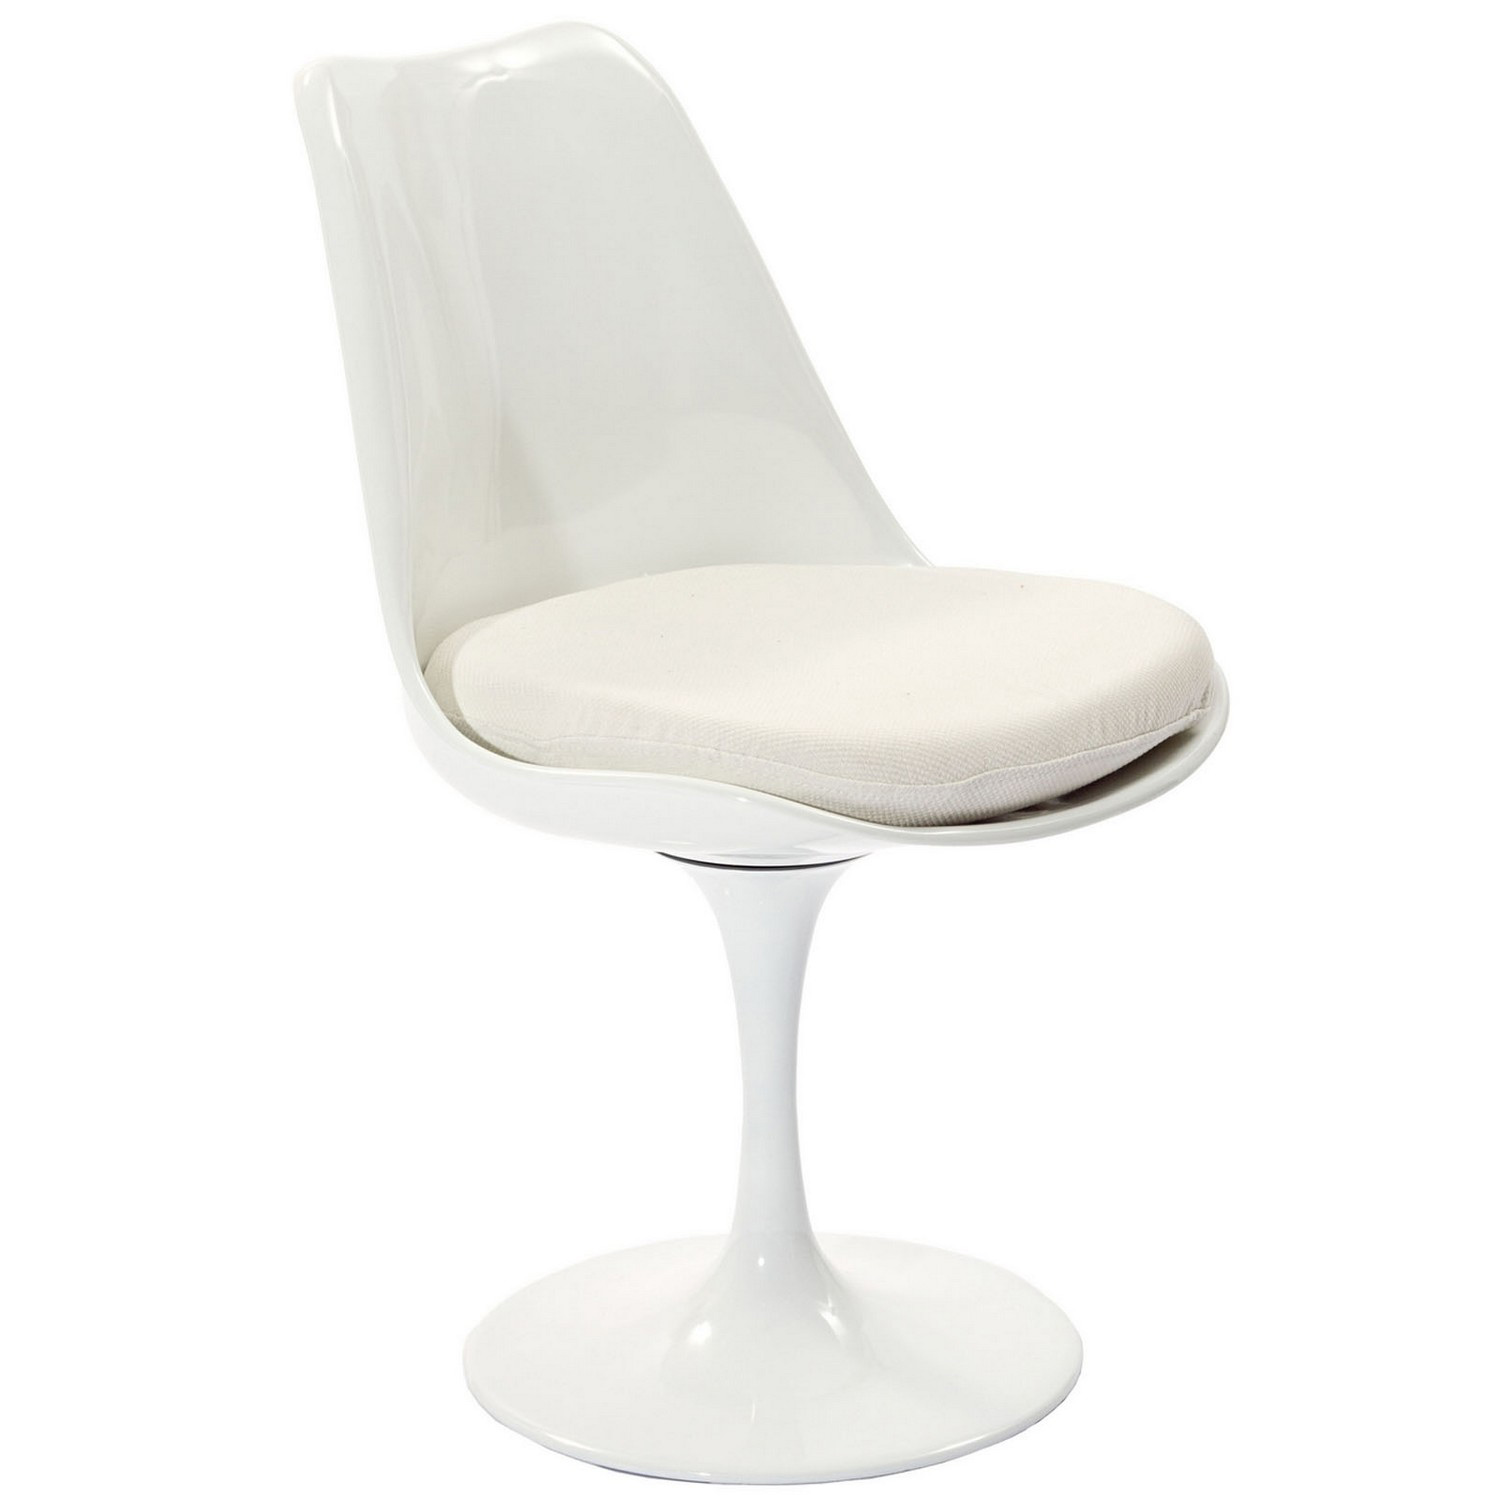 Modway Lippa Dining Fabric Side Chair - White